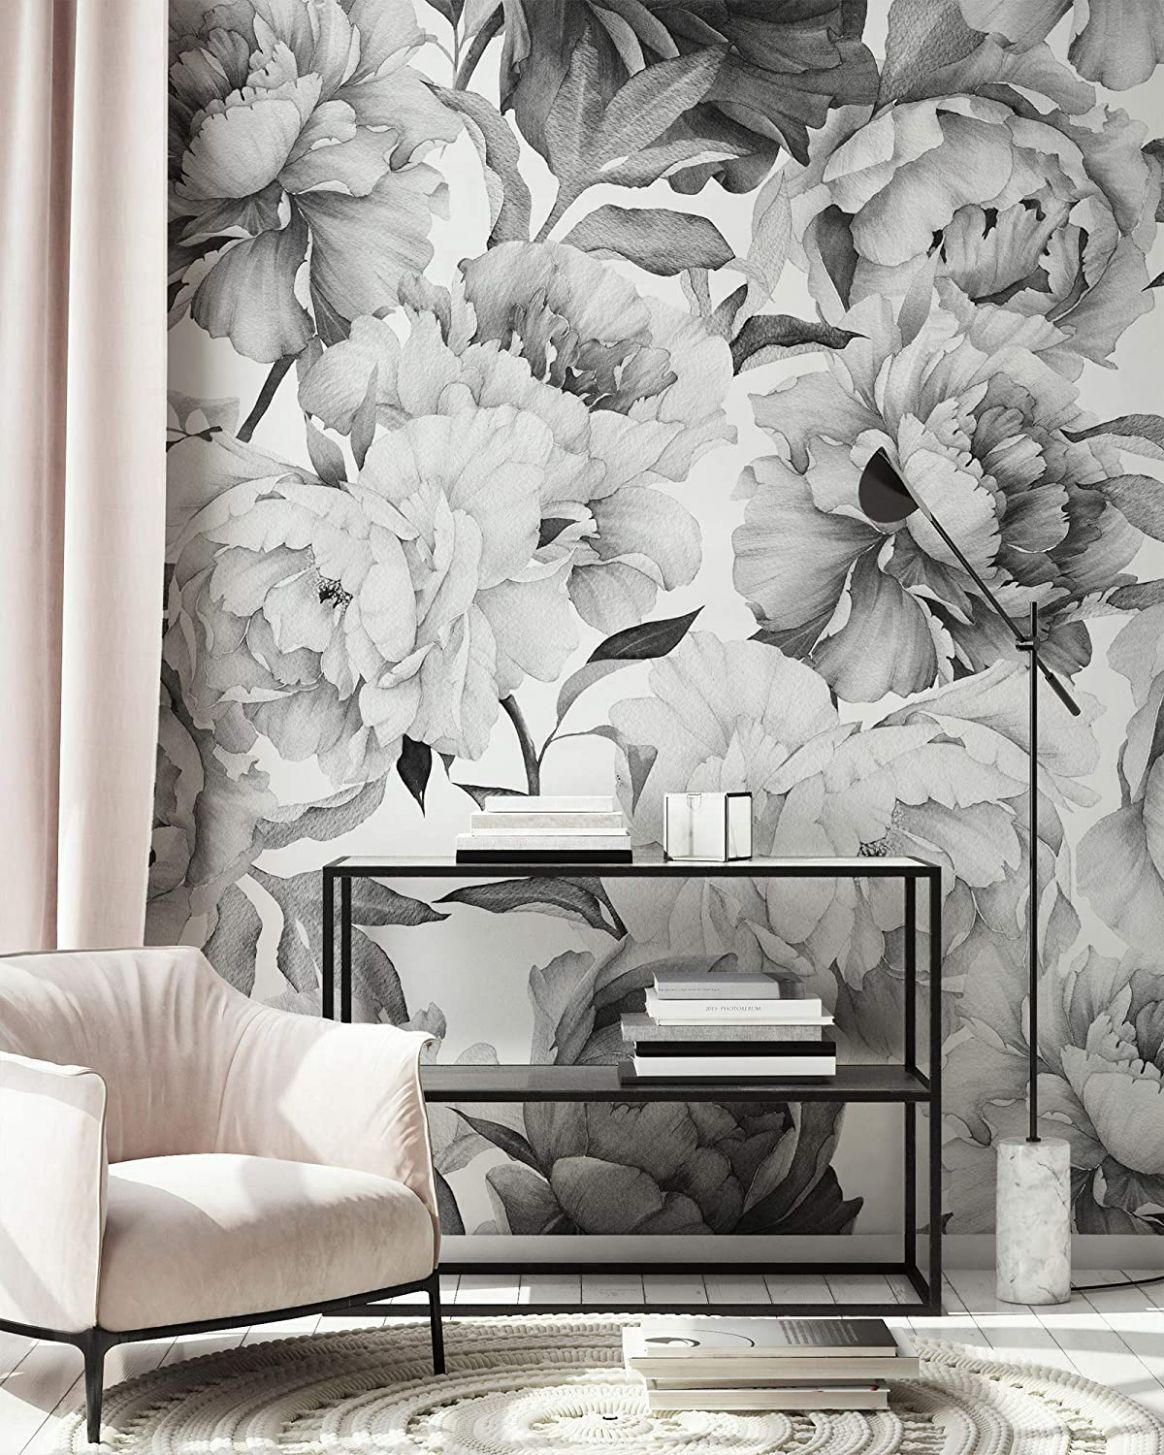 Murwall Dark Floral Wallpaper Charcoal Flower Wall Mural Monochrome Peony  Wall Print Classical Home Decor Cafe Design - home decor wallpaper